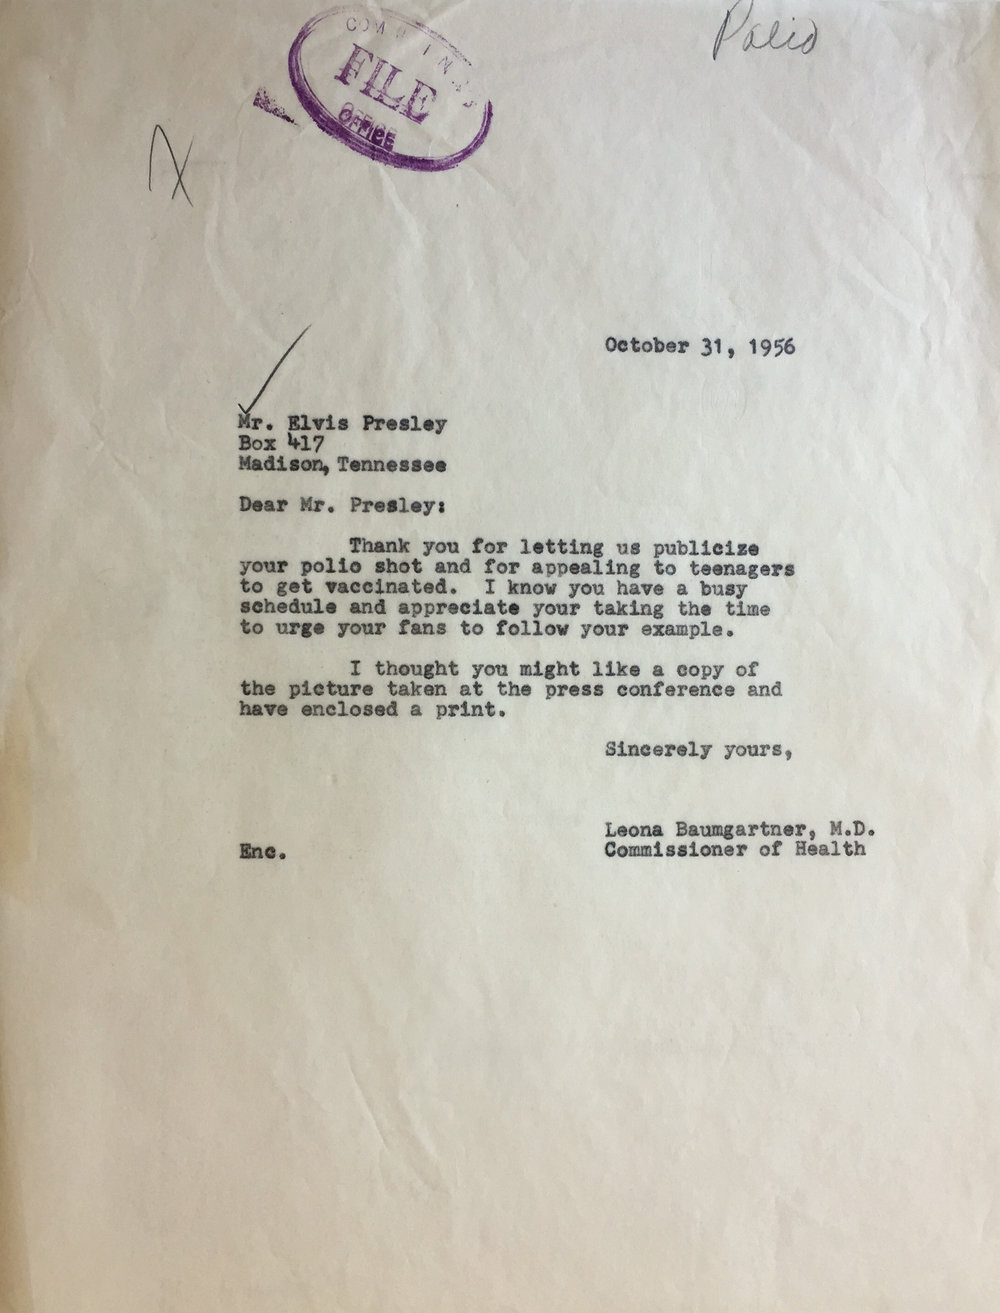 Letter from Dr. Leona Baumgartner, Commissioner of Health, to Elvis Presley, 1956. Department of Health Collection, NYC Municipal Archives.